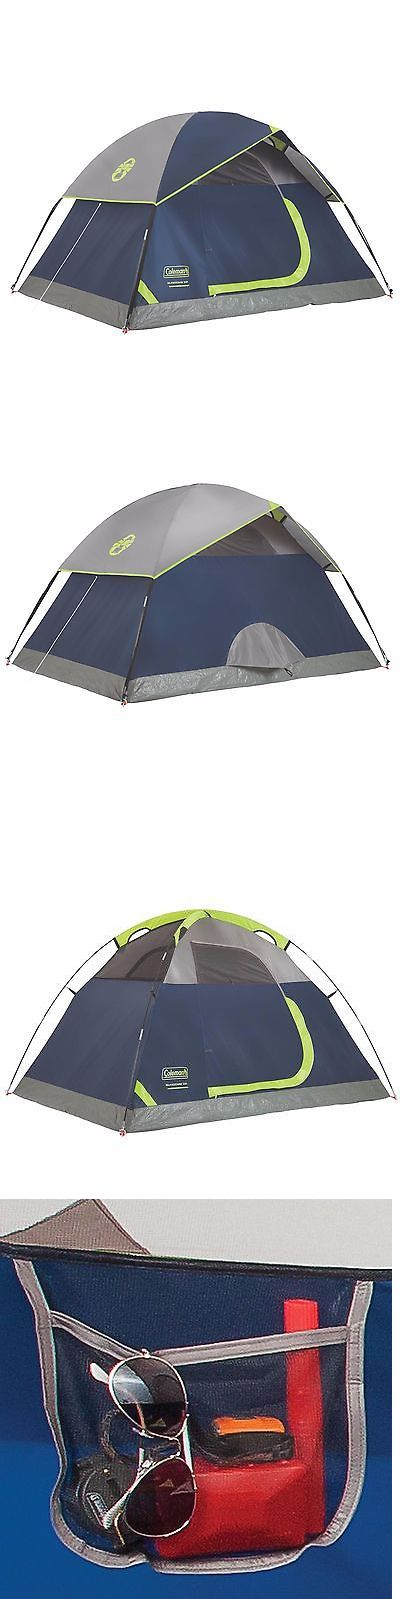 Tents 179010: Coleman Sundome 2 Person Outdoor Hiking Camping Tent W/ Rainfly Awning | 7 X 5 BUY IT NOW ONLY: $49.99